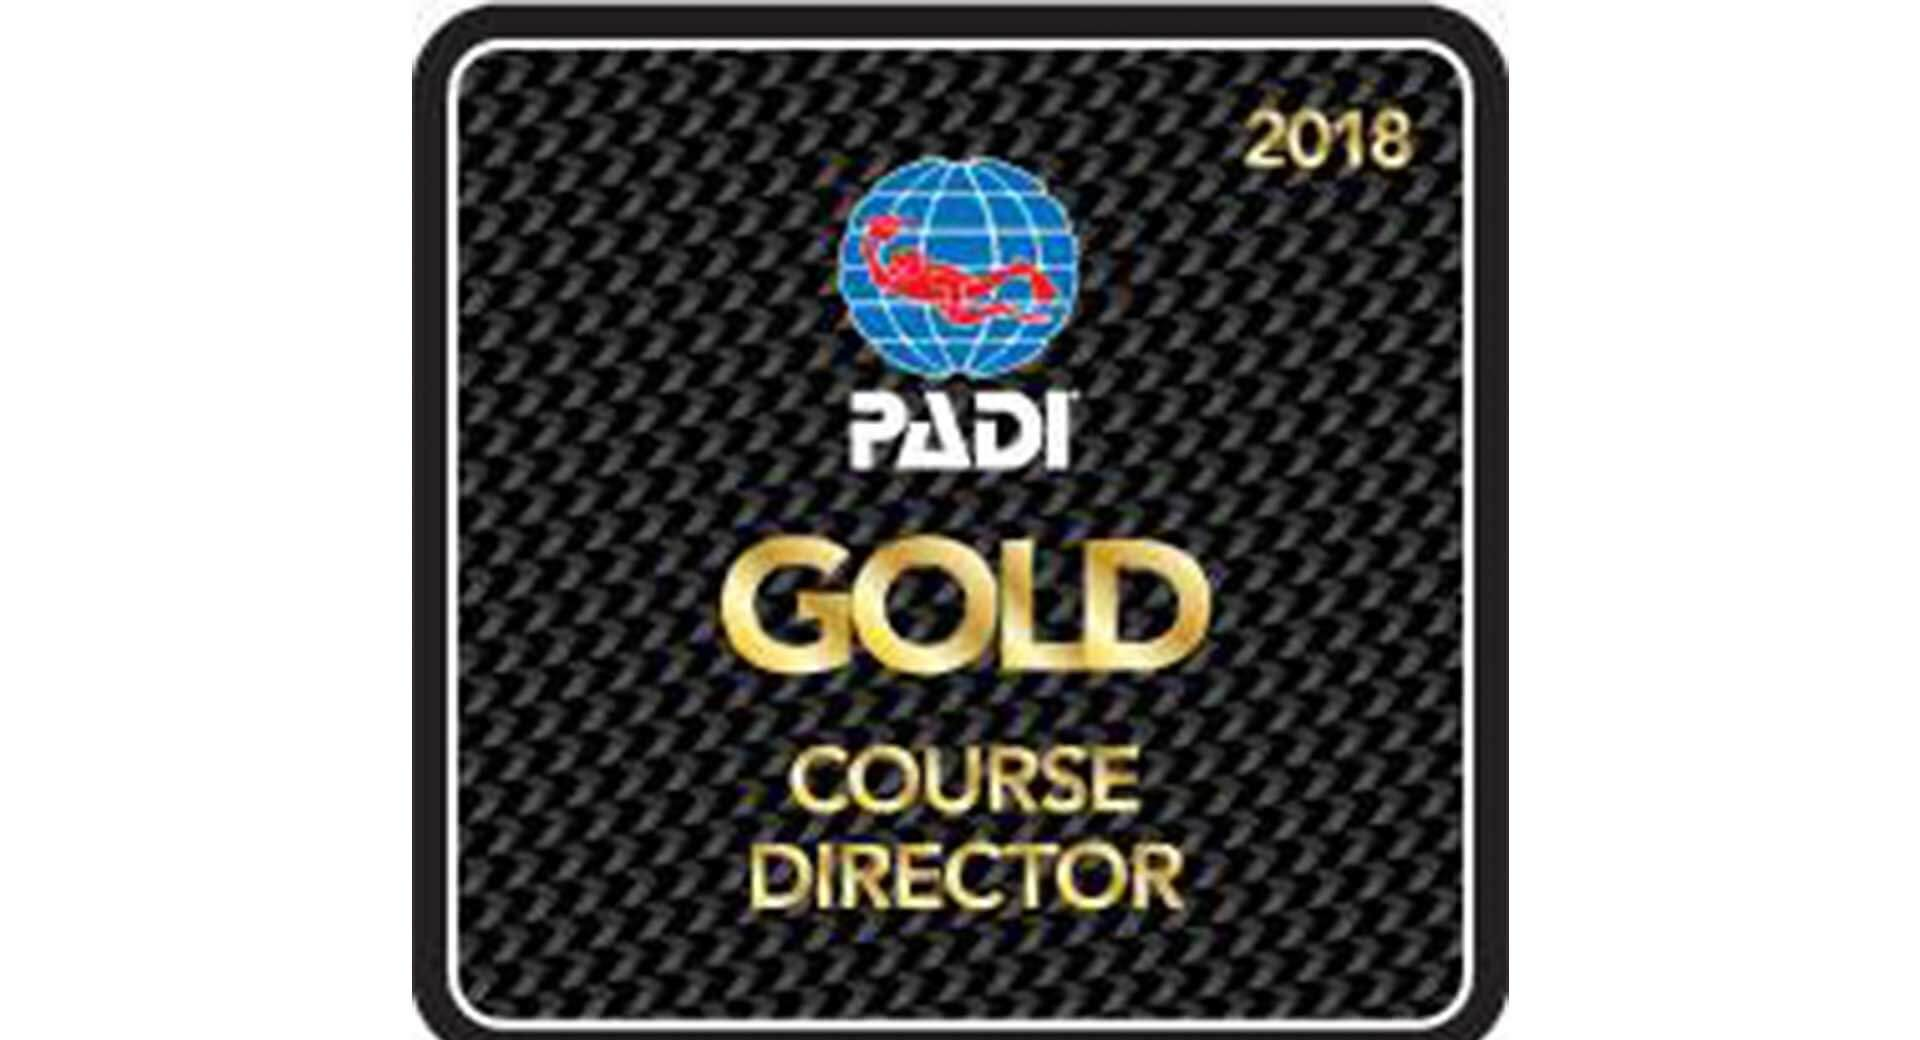 Darren Gaspari receives PADI Gold Course Director Award 2018